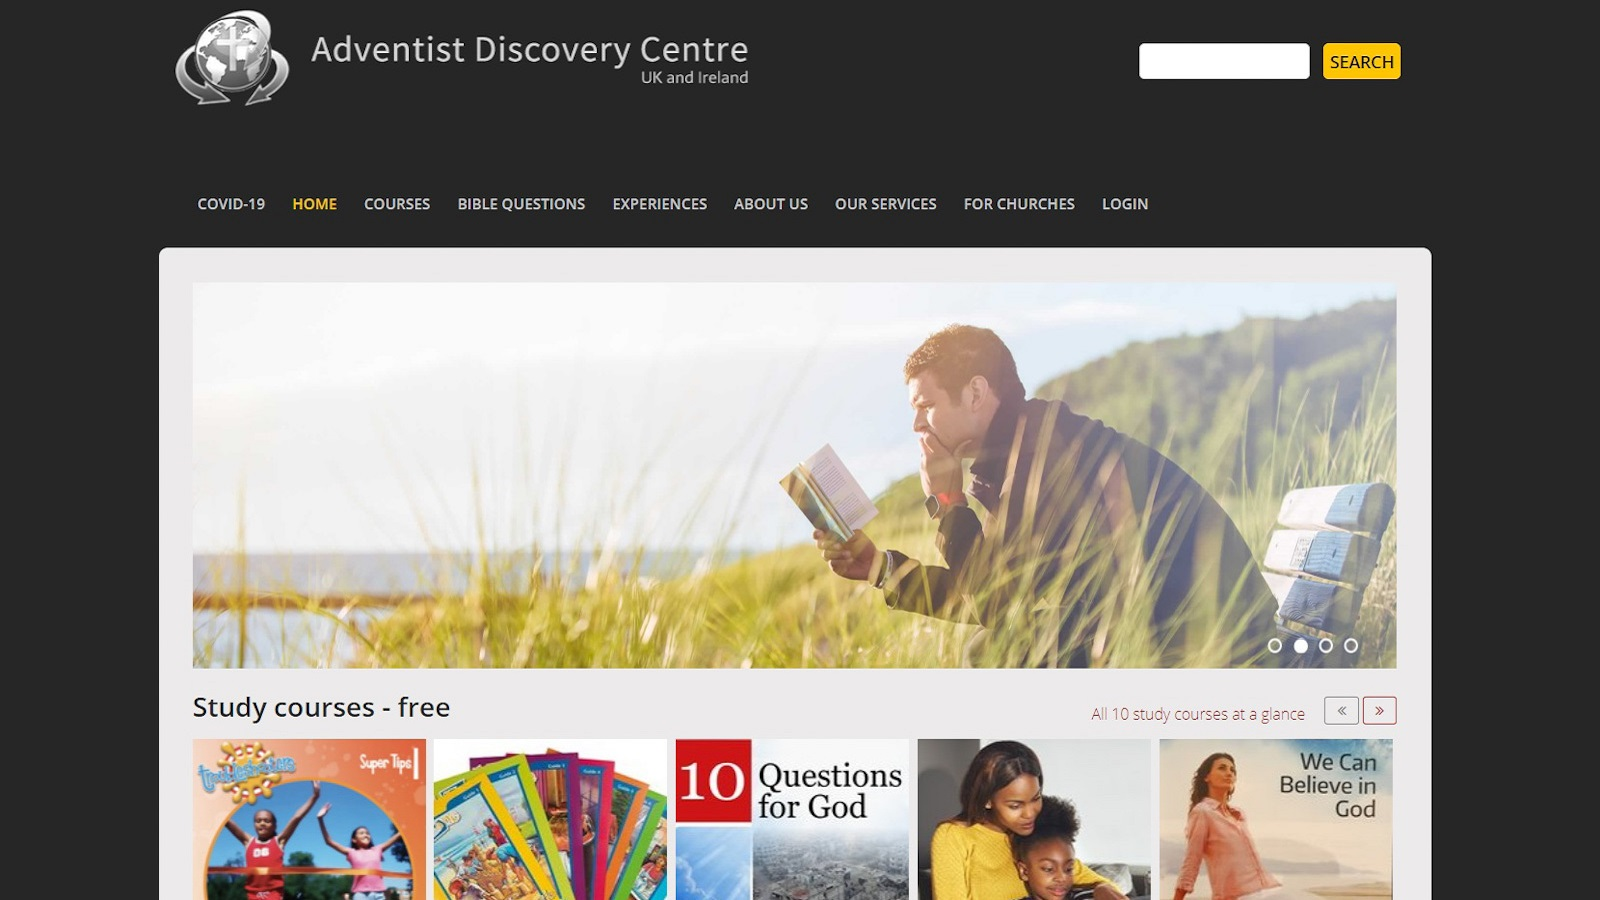 Adventist Discovery Centre website